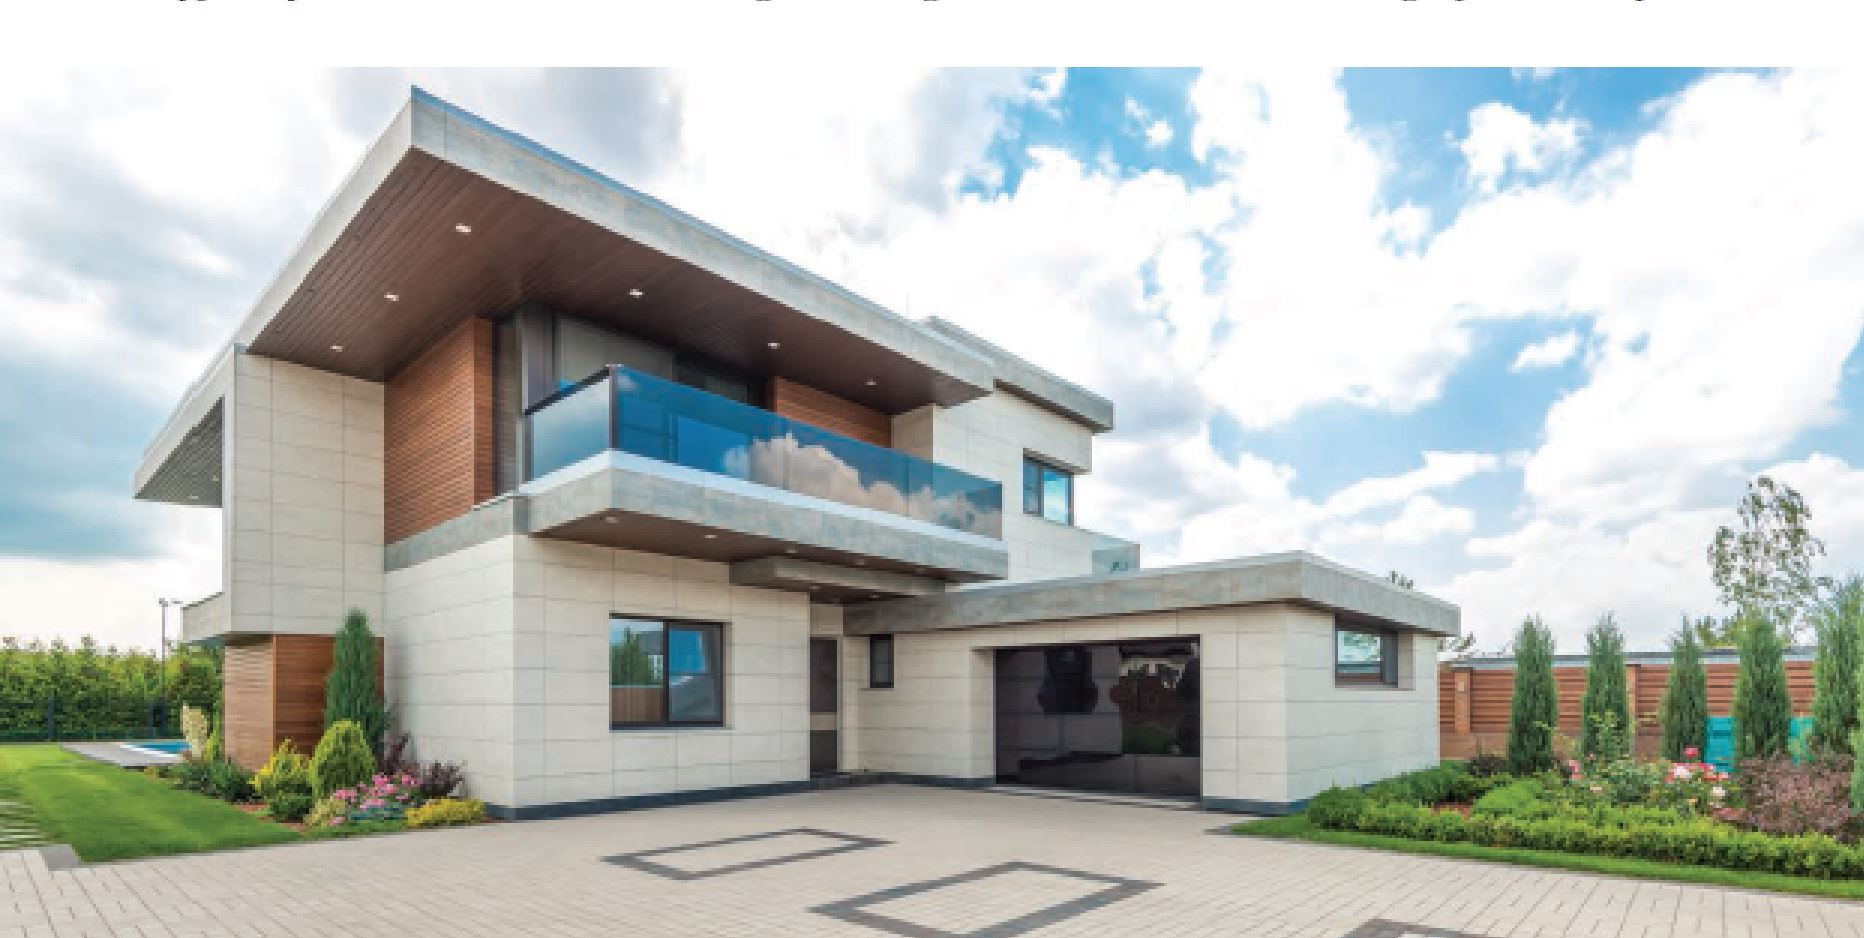 Luxury home market Report for North America Contemporary Luxury Home June 2021 ILHM Hoey Team 239RealEstateDeals.Com LLC